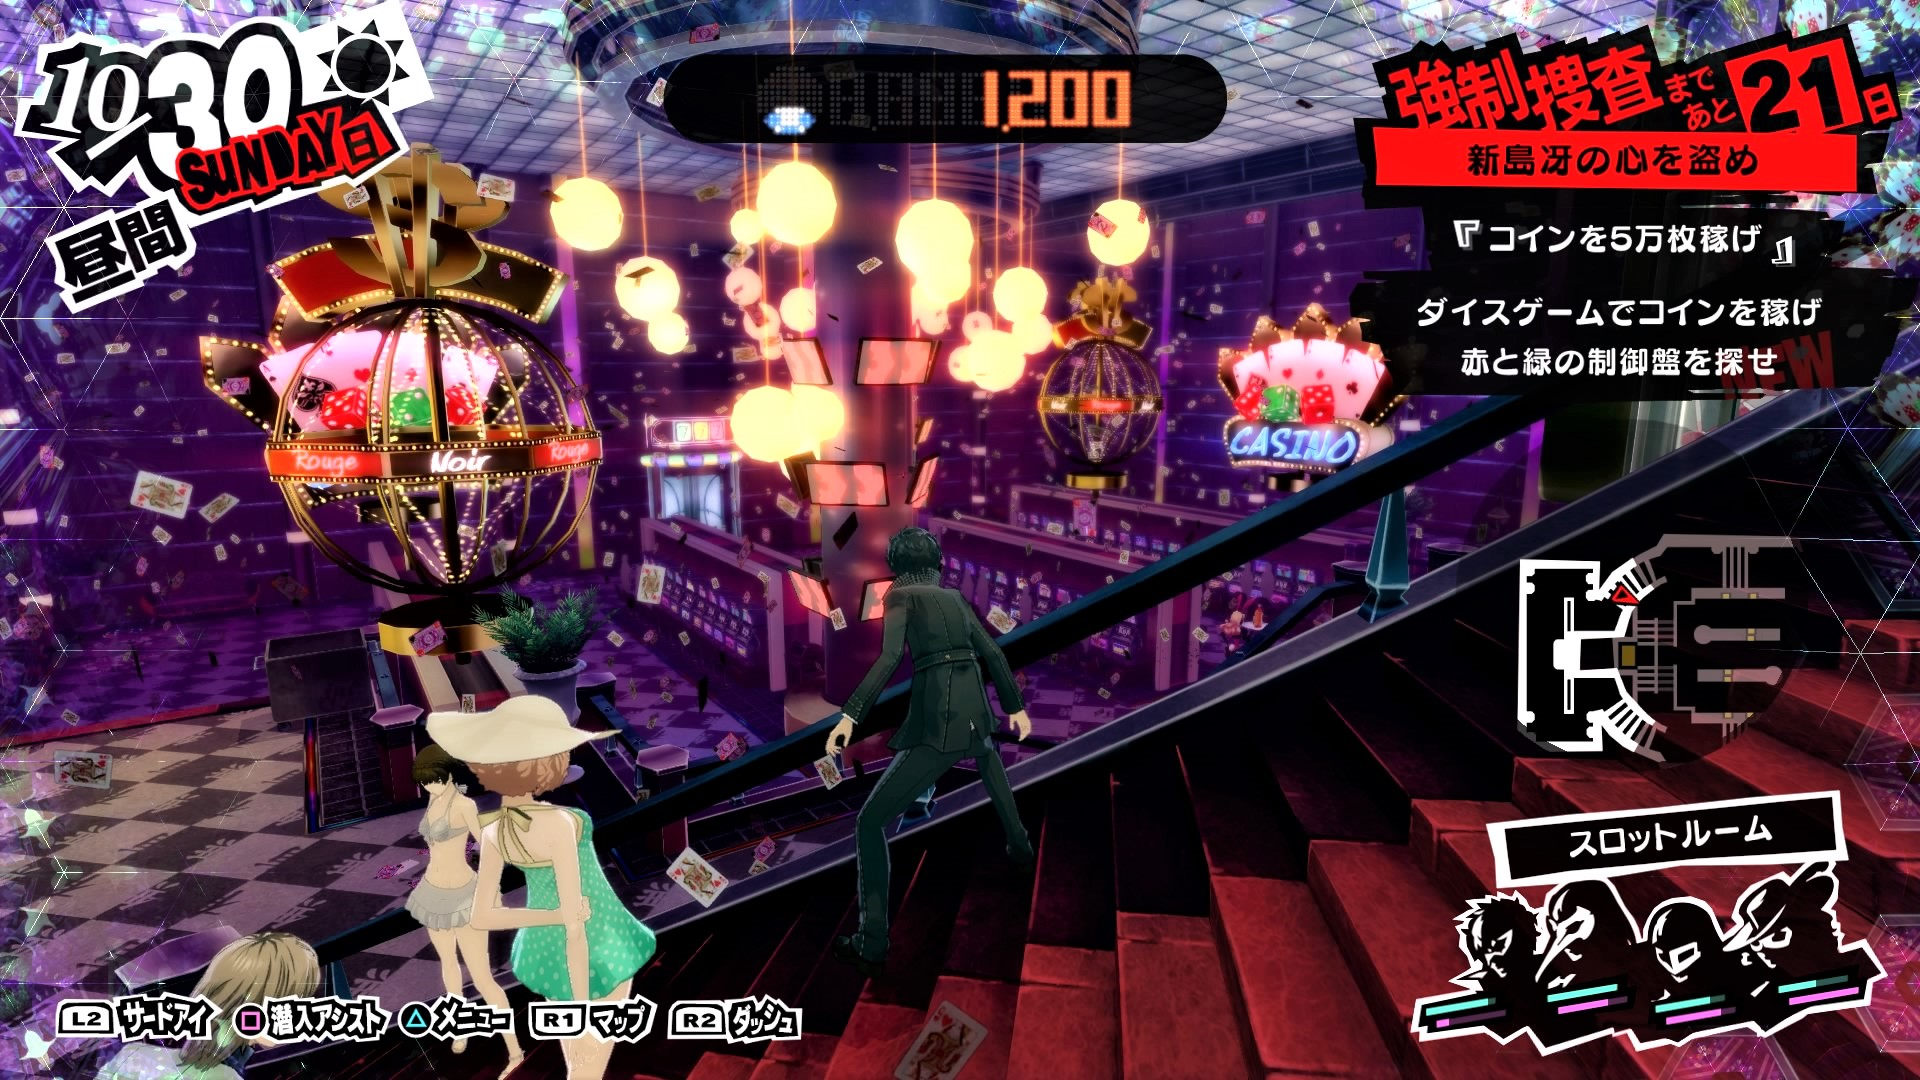 Persona 5 Royal casino